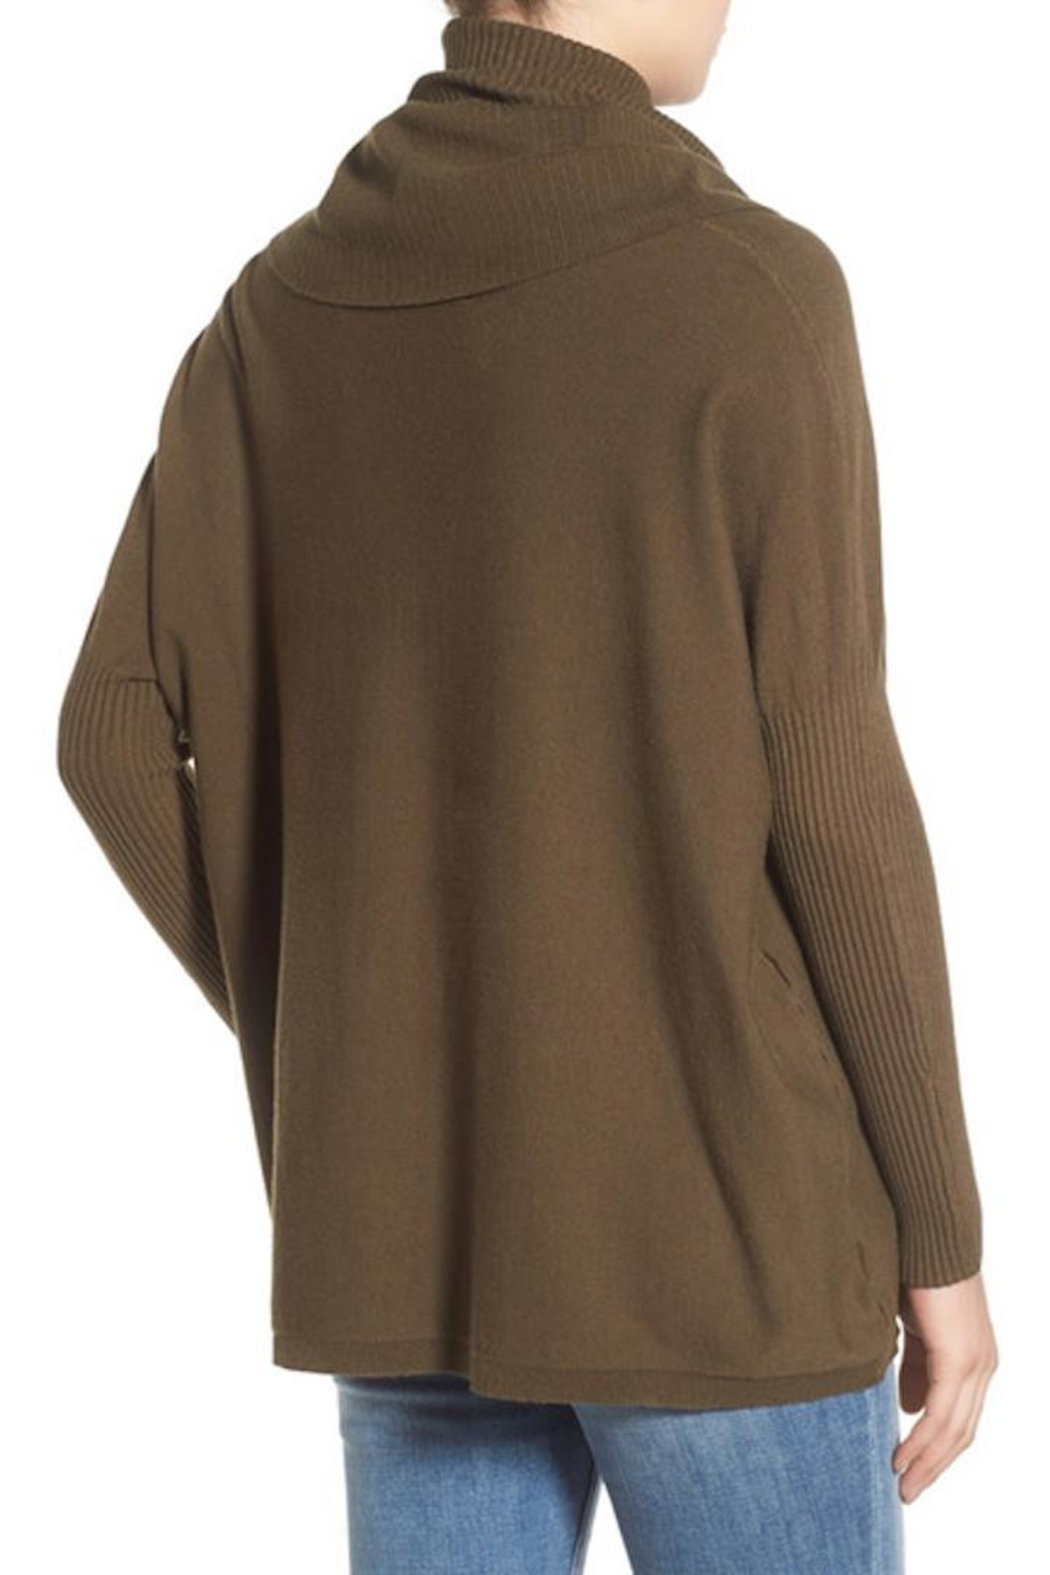 Dreamers Cowl Neck Pullover Top - Front Full Image